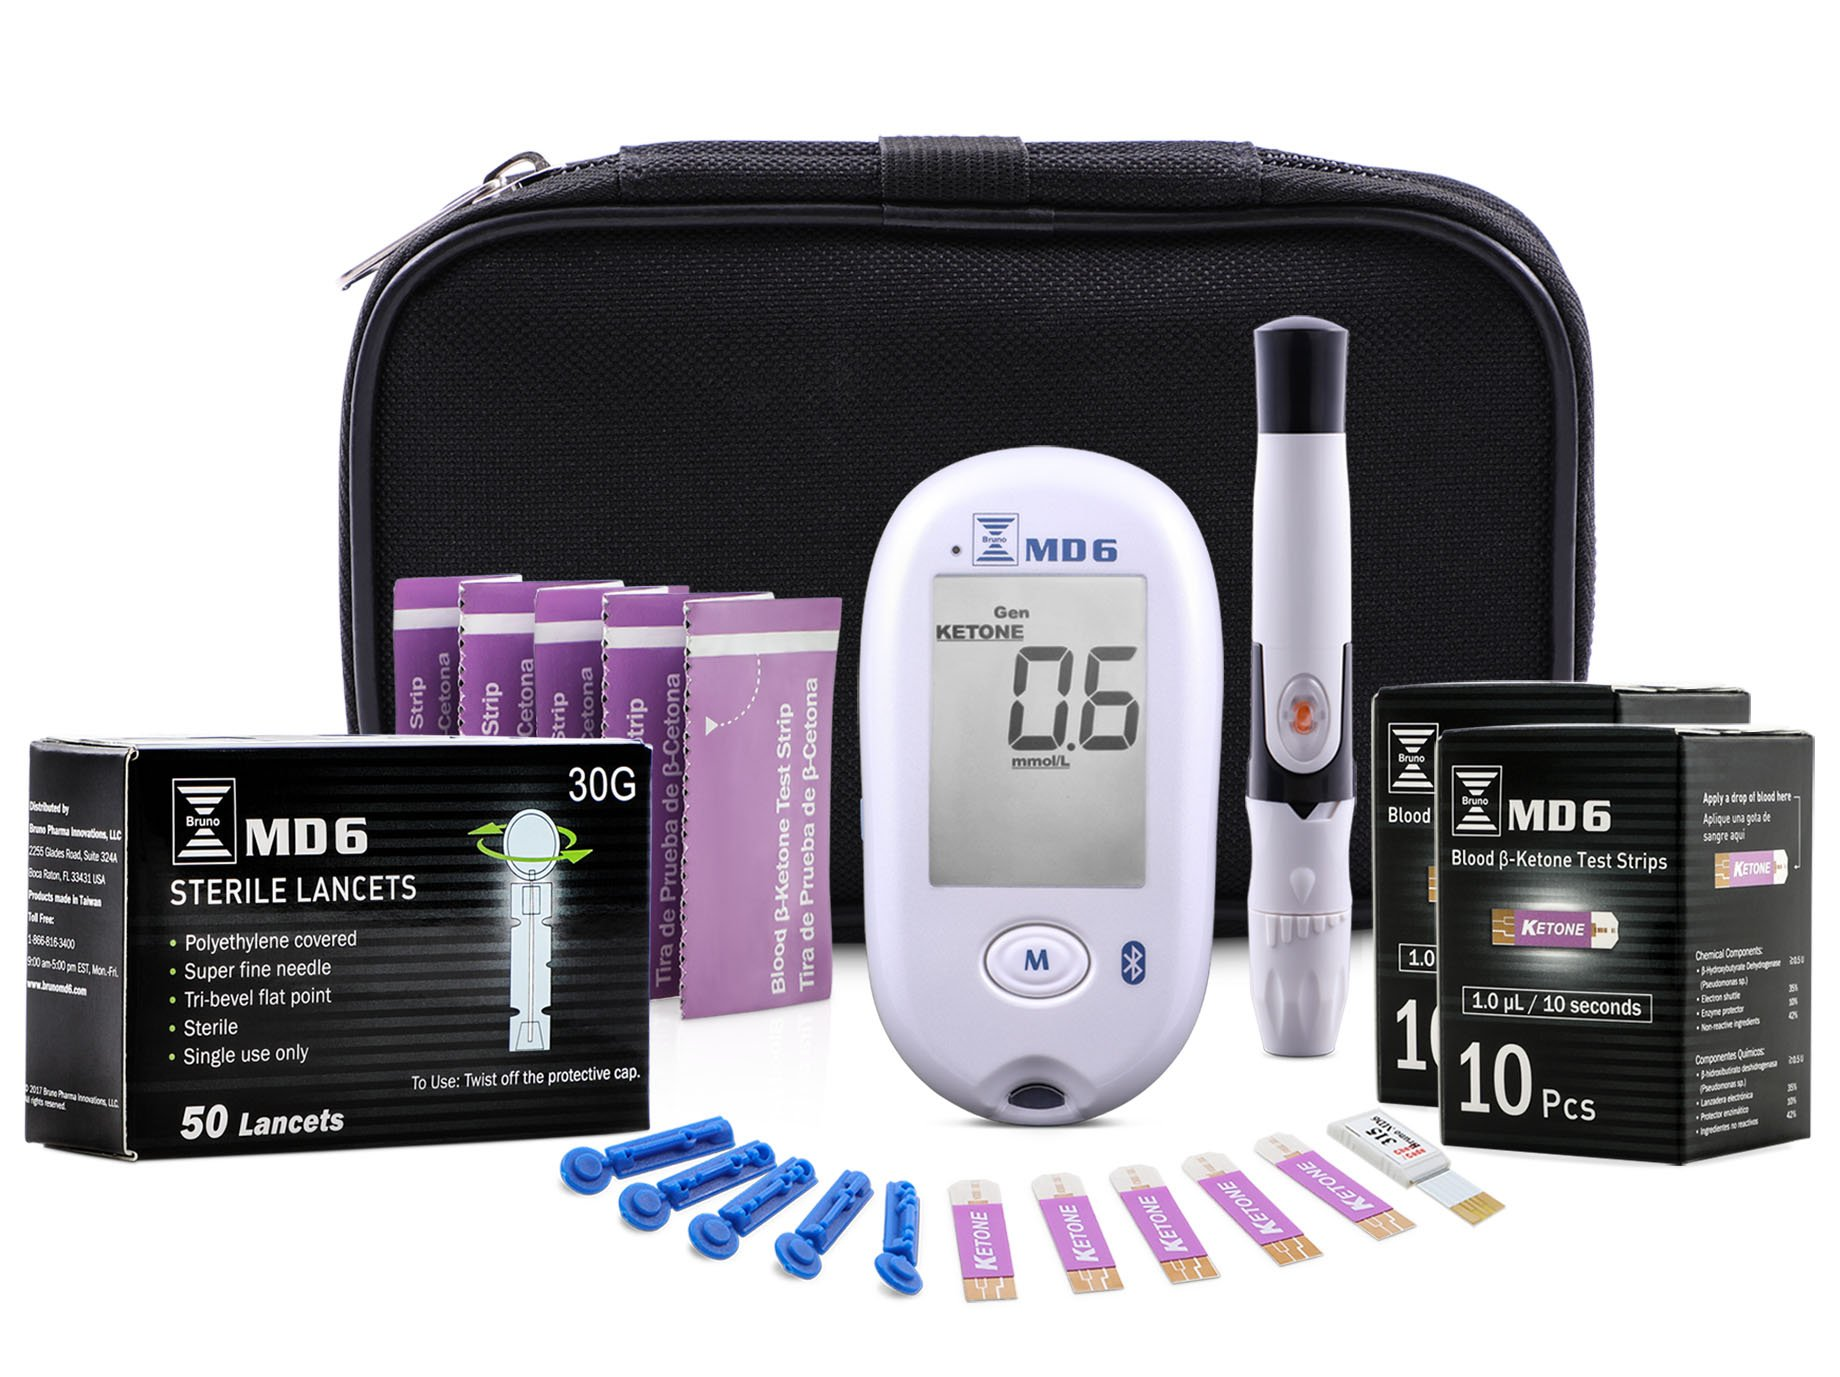 Blood Ketone Monitoring System | Track Your Ketones and Ketogenic Diet Progress | Ketosis Test Kit with Lancing Device, 10 Blood Glucose Test Strips, 20 Keto Strips + 50 Lancets by Bruno Pharma MD6 by Bruno MD6